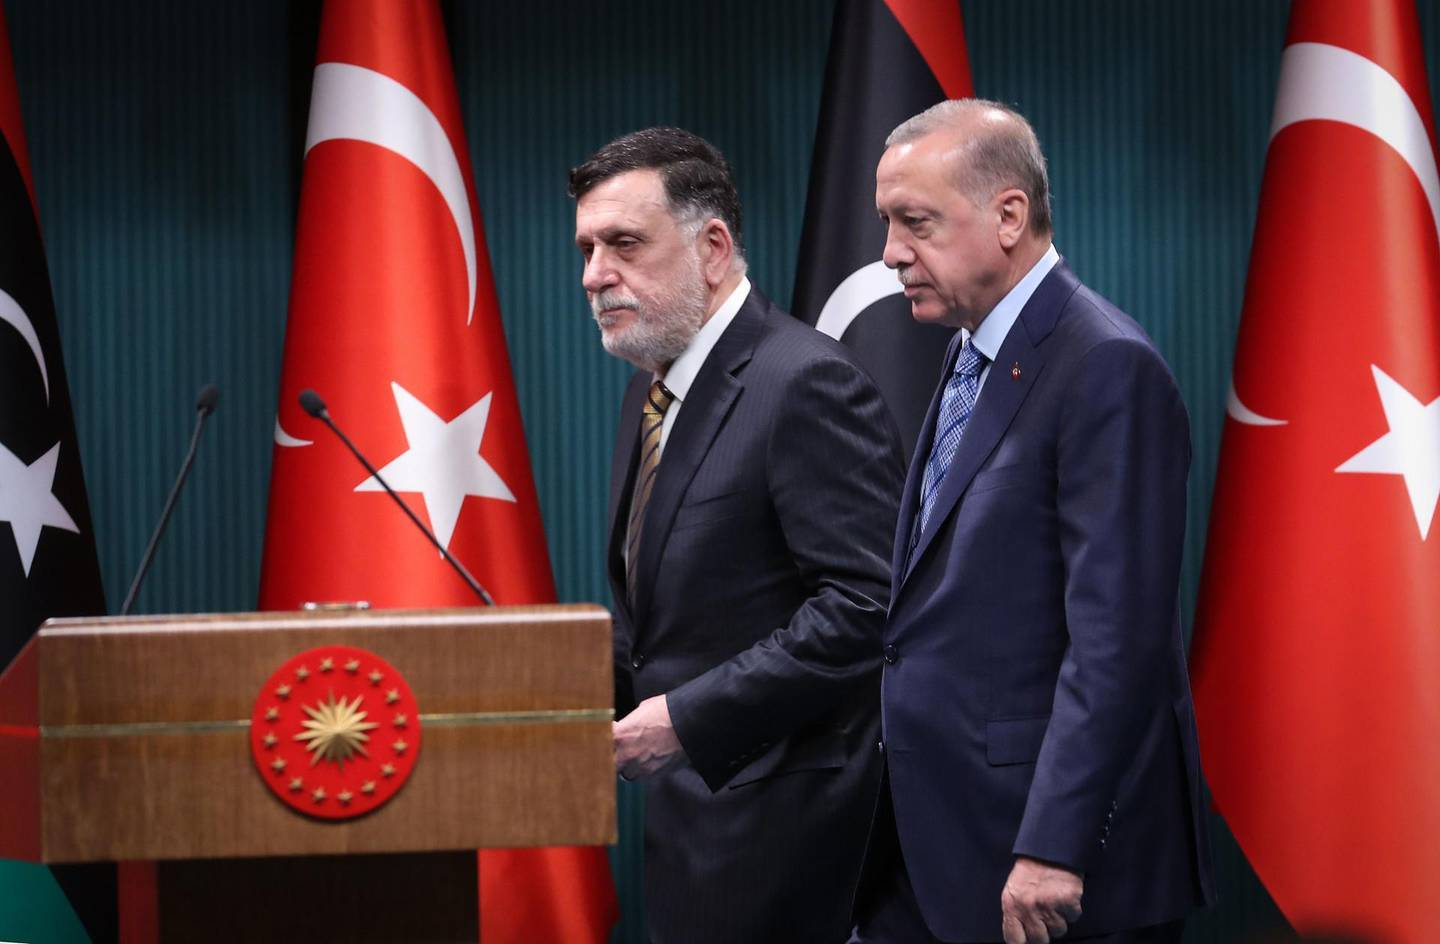 Turkish President Recep Tayyip Erdogan (R) and Libyan Prime Minister Fayez al-Sarraj (L) arrive for a joint press conference at the Presidential Complex in Ankara on June 4, 2020.   / AFP / Adem ALTAN